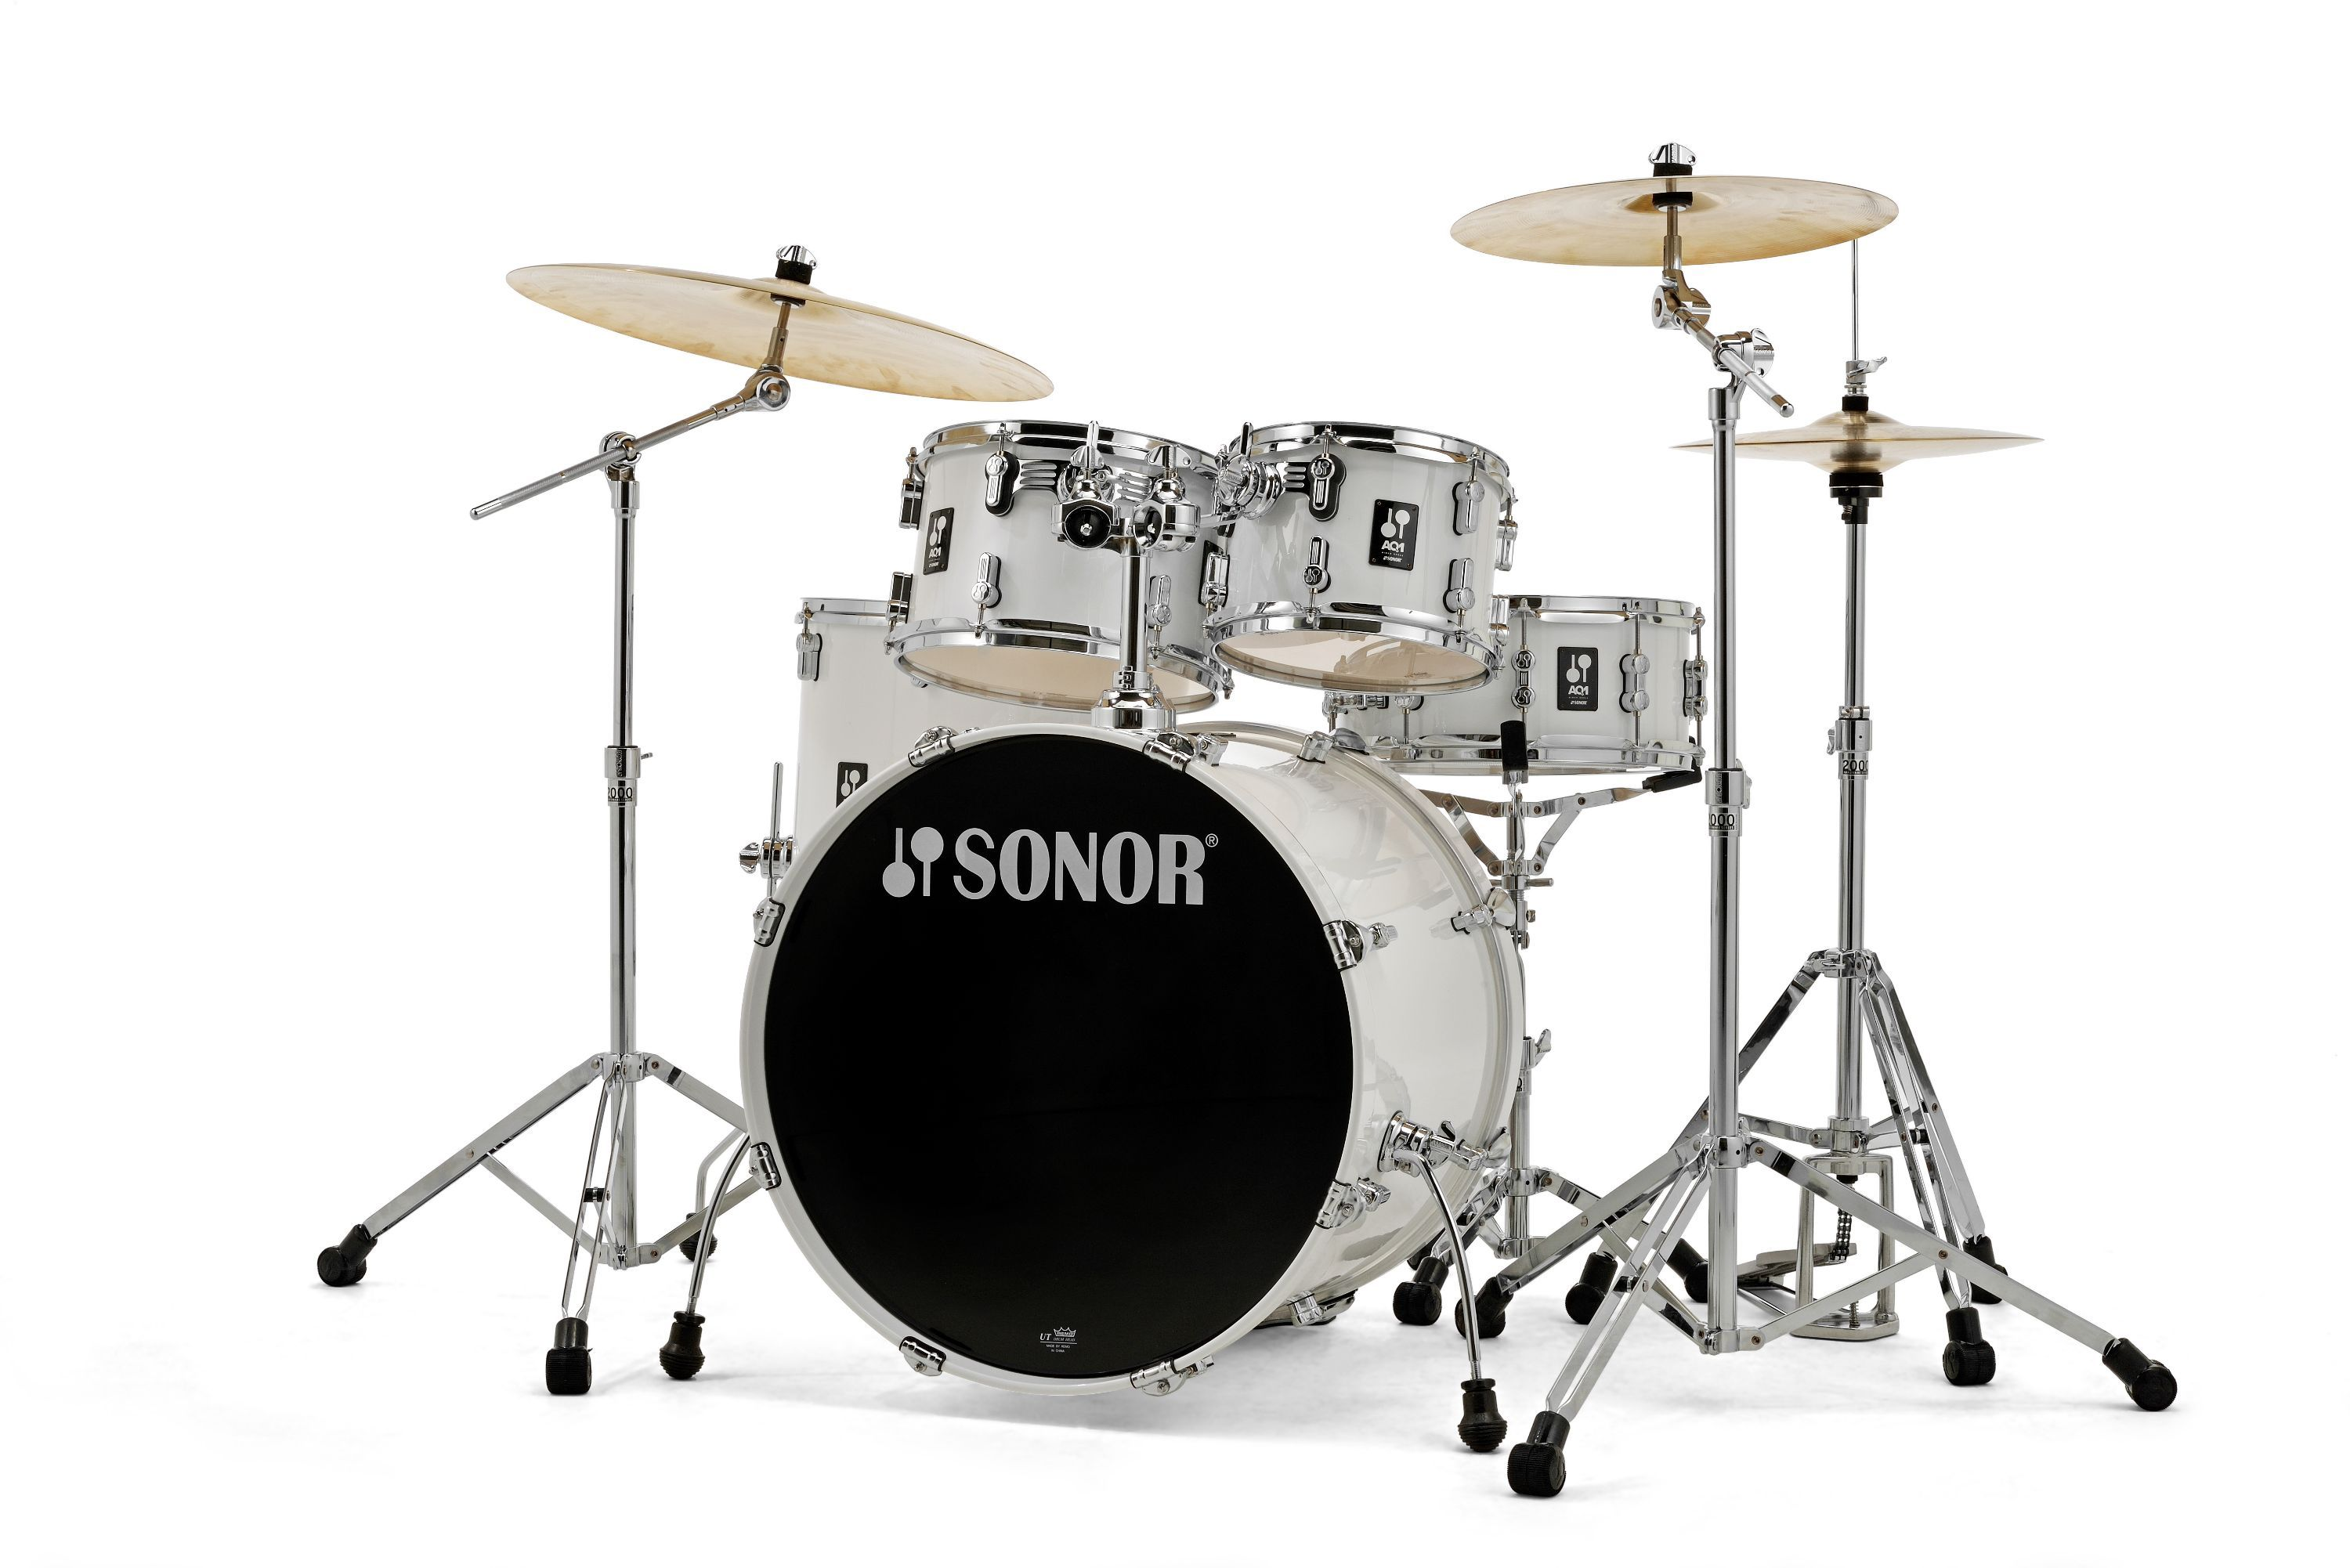 Sonor Aq1 Stage Set 22x17 5 16x15 12x8 10x7 14x6 In Piano